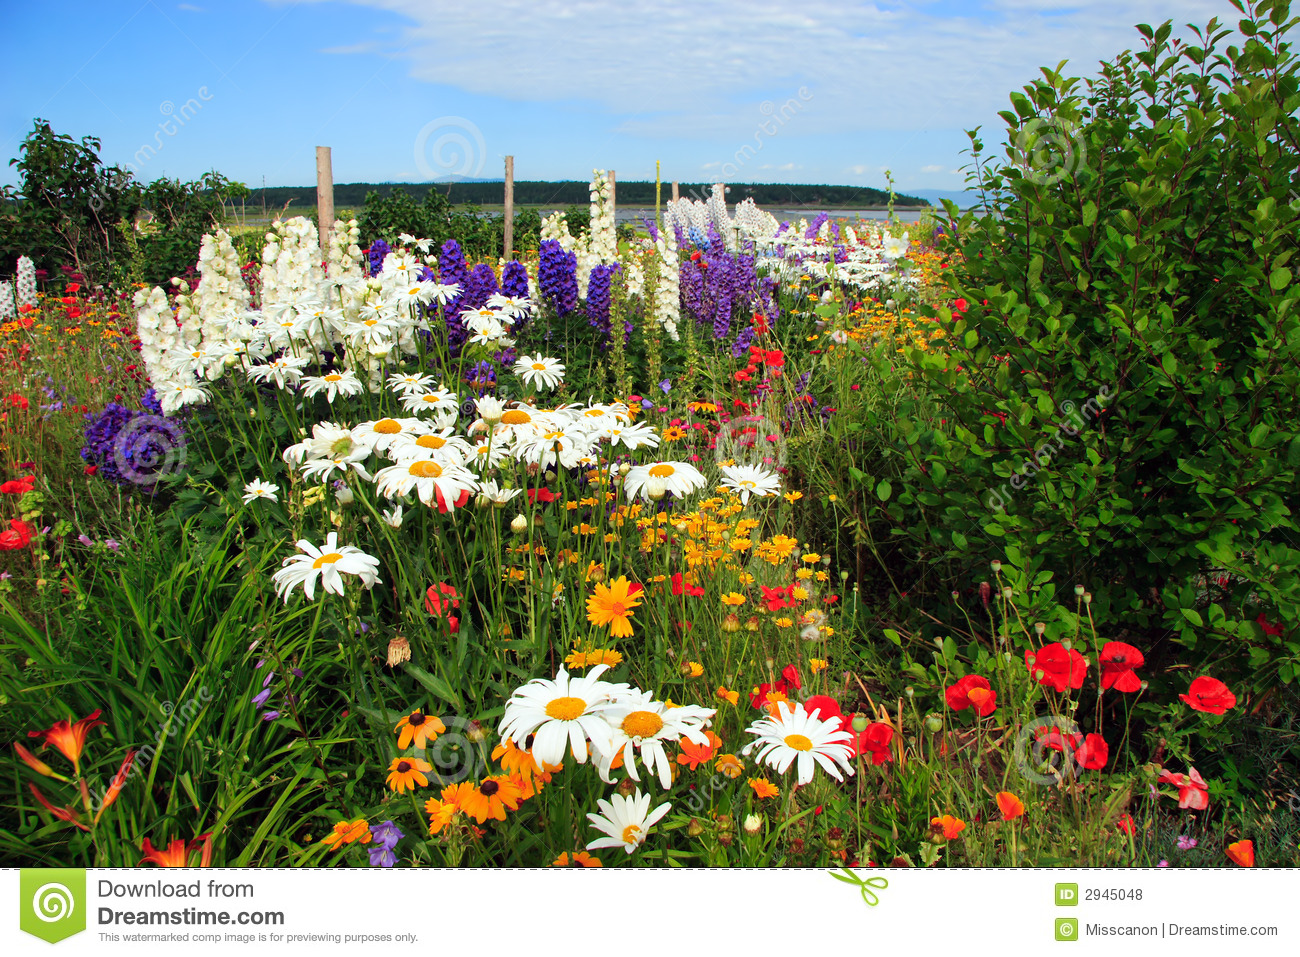 Amazing flower garden royalty free stock photos image for Amazing flower gardens